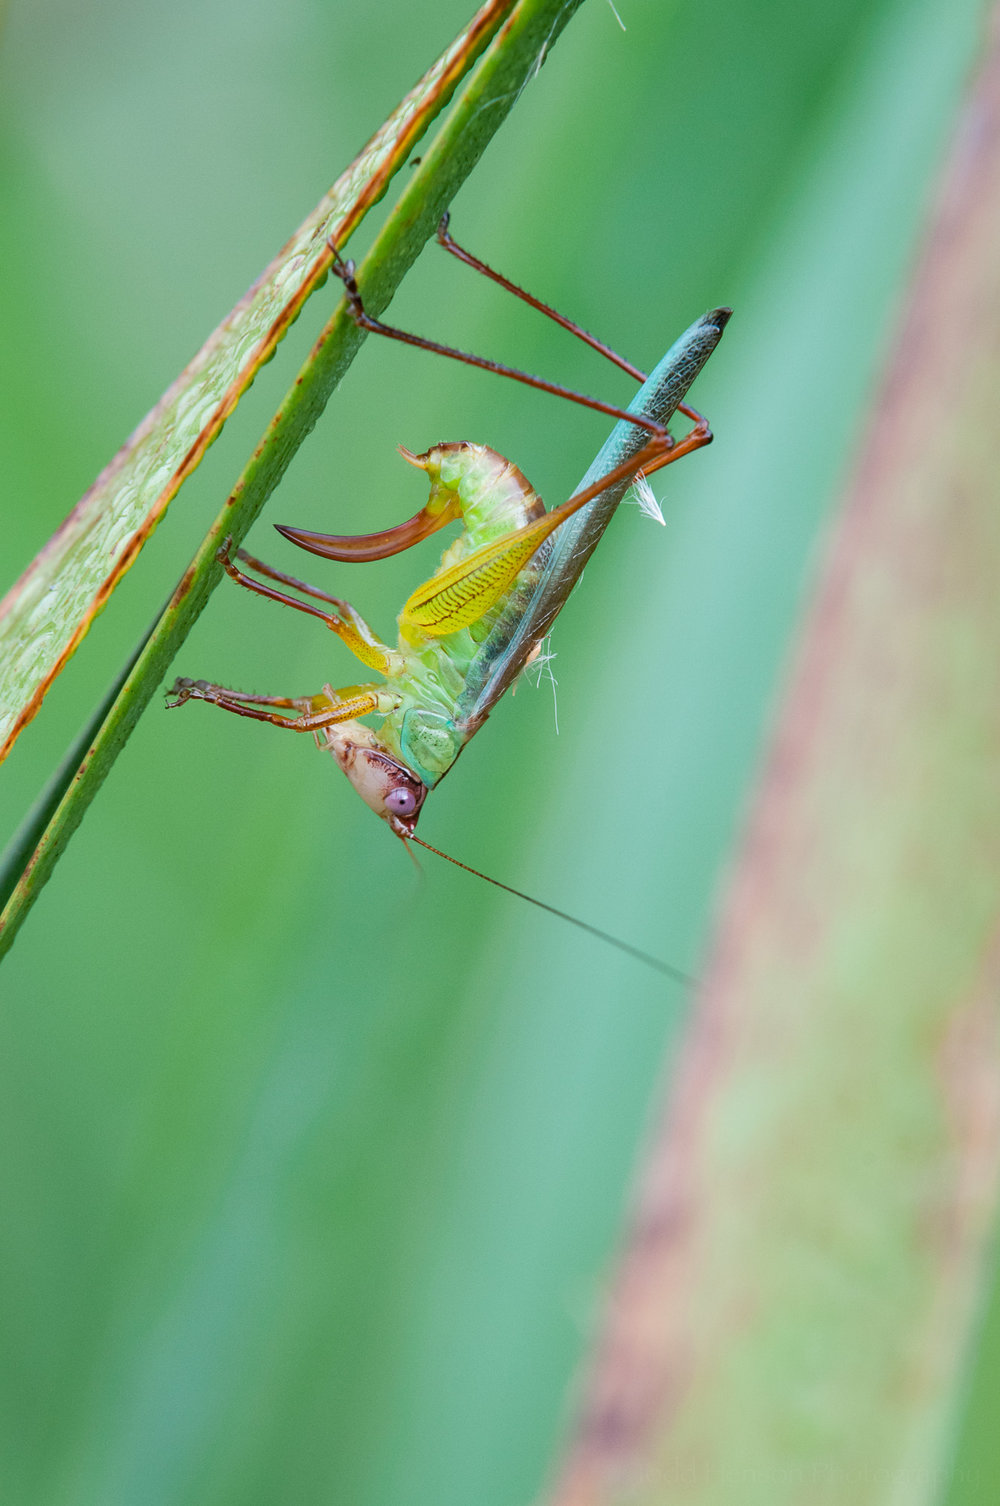 Sixth of a sequence of a katydid cleaning itself.